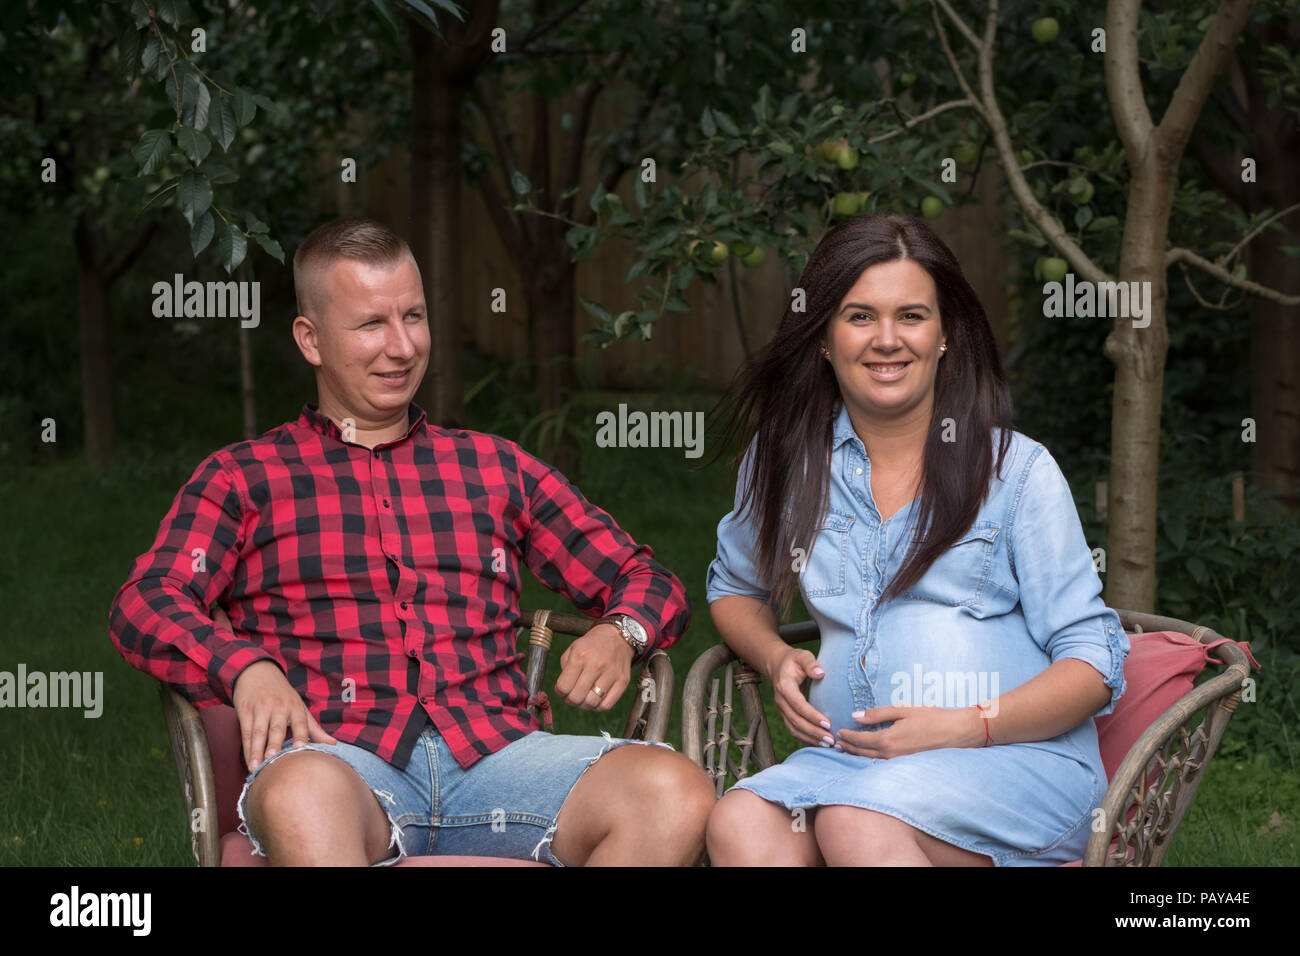 Adult male and a pregnant woman relax in the summer in the garden - Stock Image